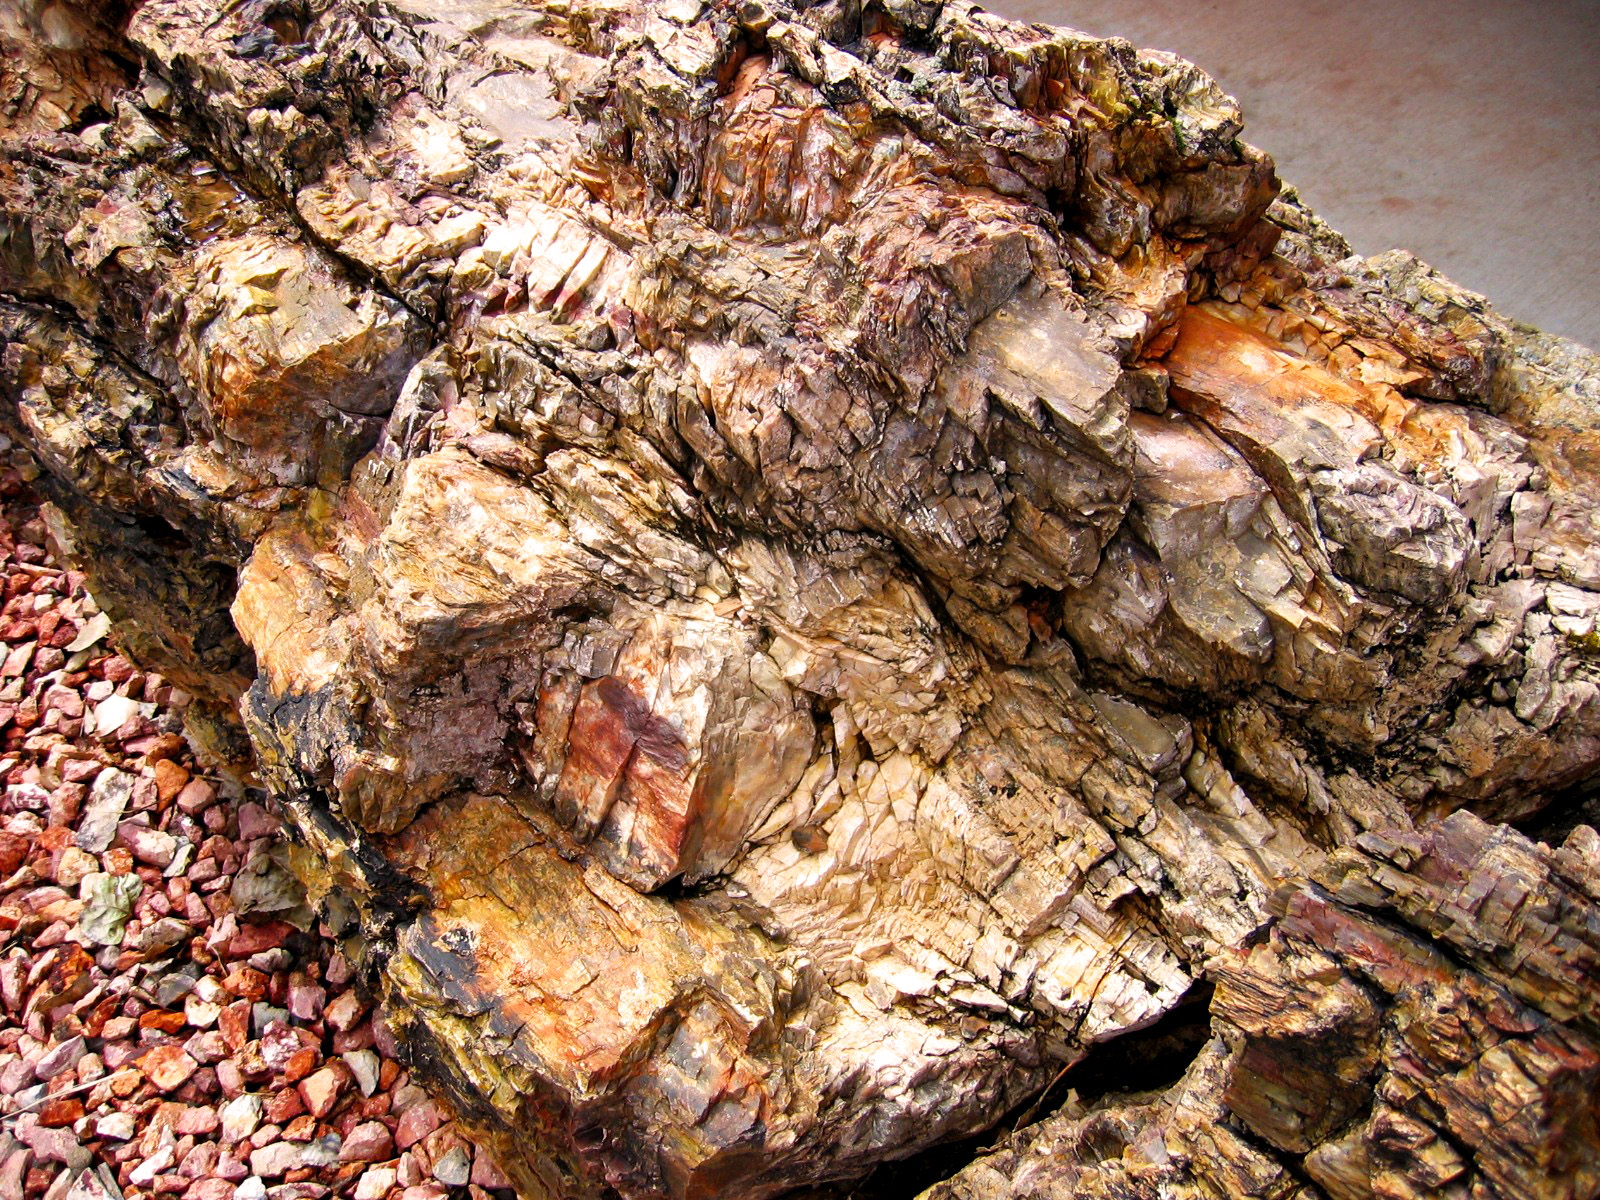 Petrified wood can be found spread throughout the whole park.